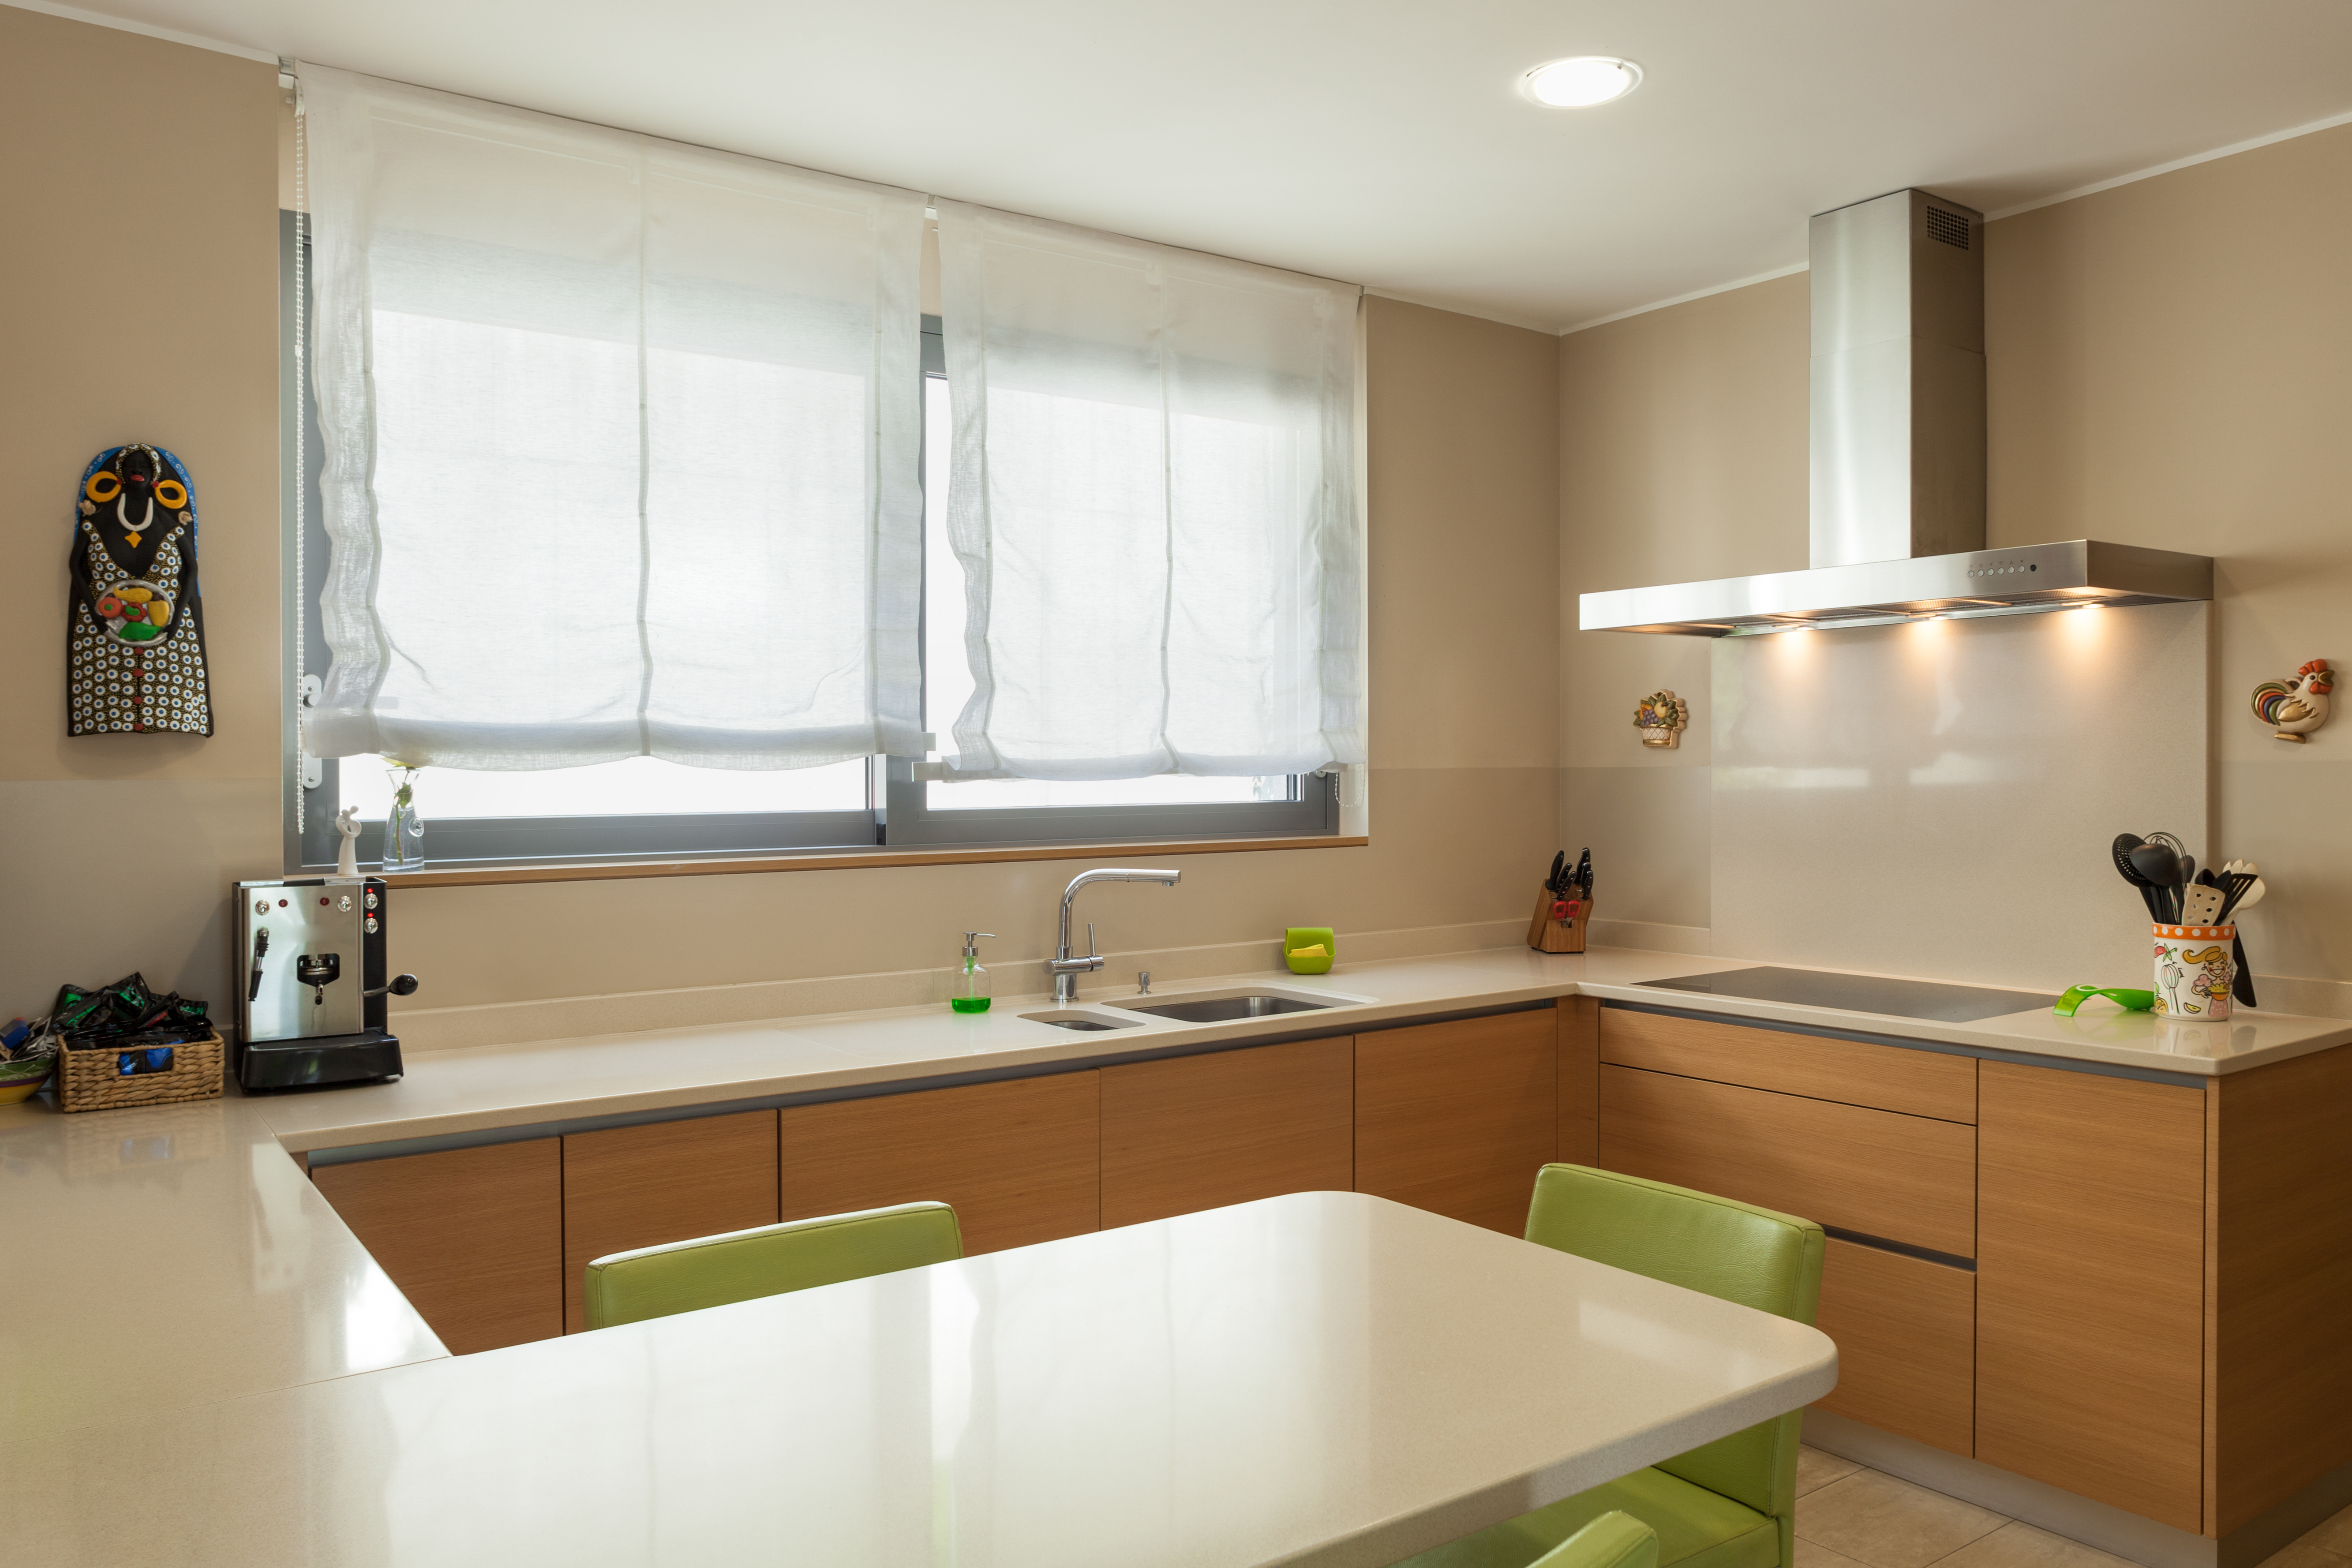 G-shaped Kitchens: How Good Are They? - Homebliss